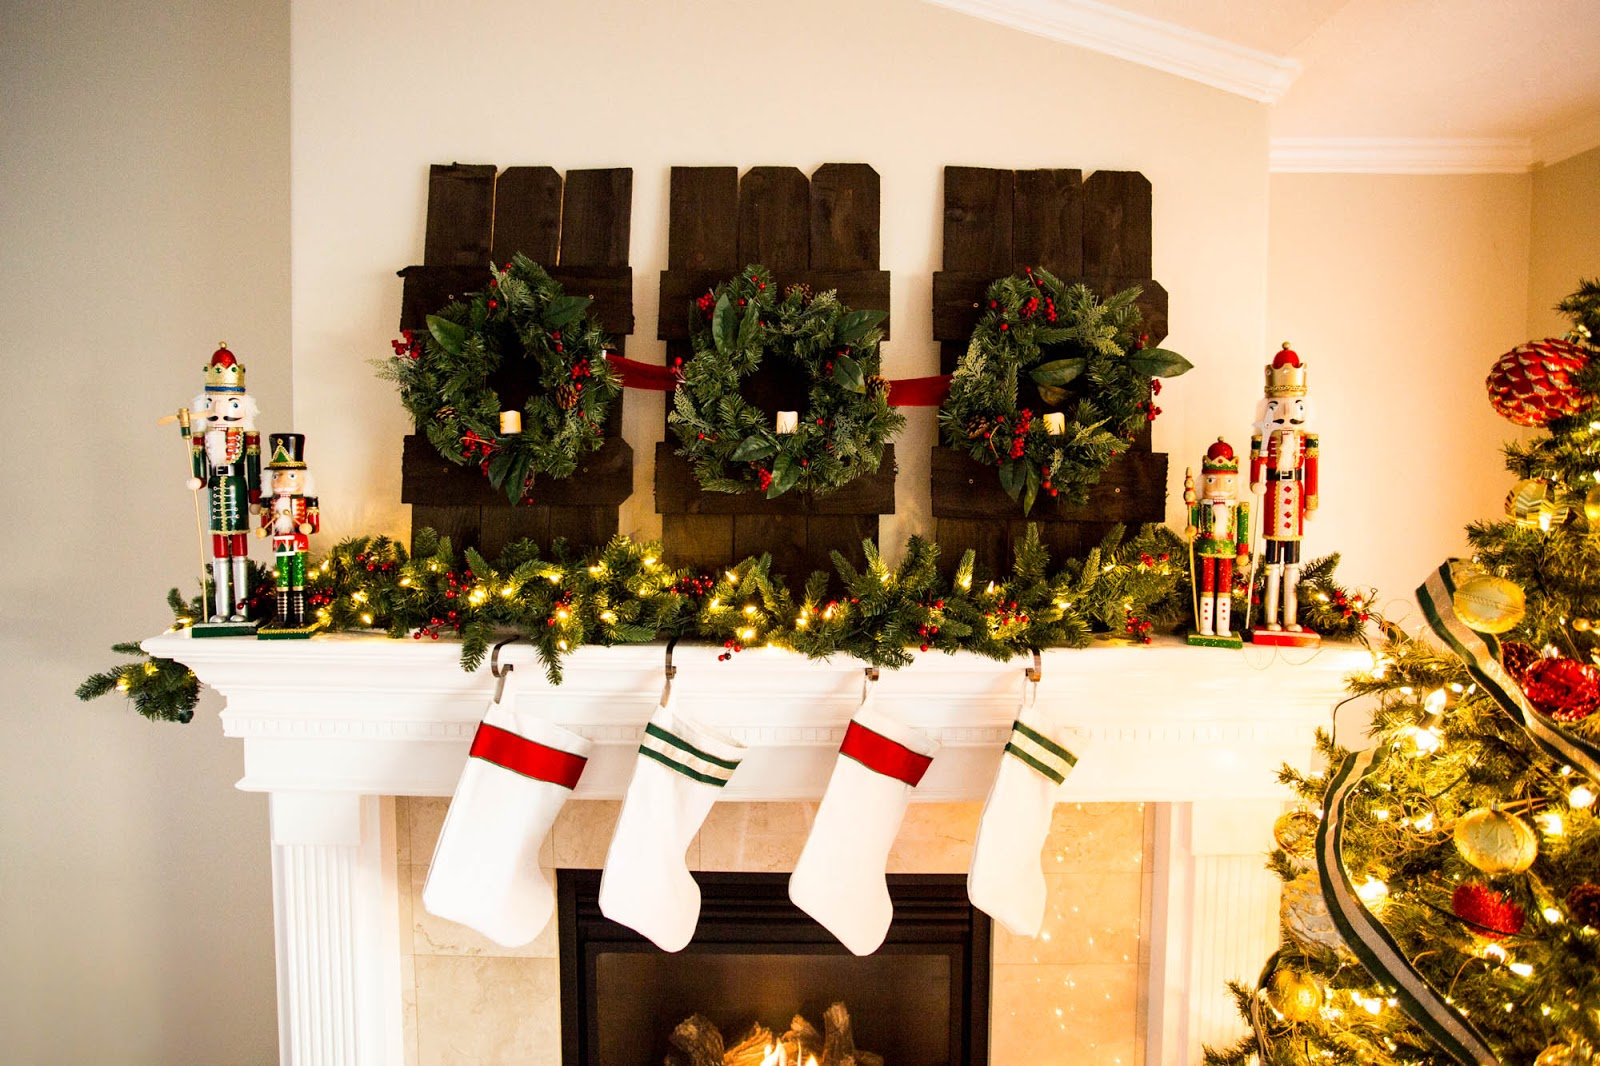 Do it yourself divas decorating a mantle for christmas with home diy christmas mantle fireplace nutcrackers garland lights candles solutioingenieria